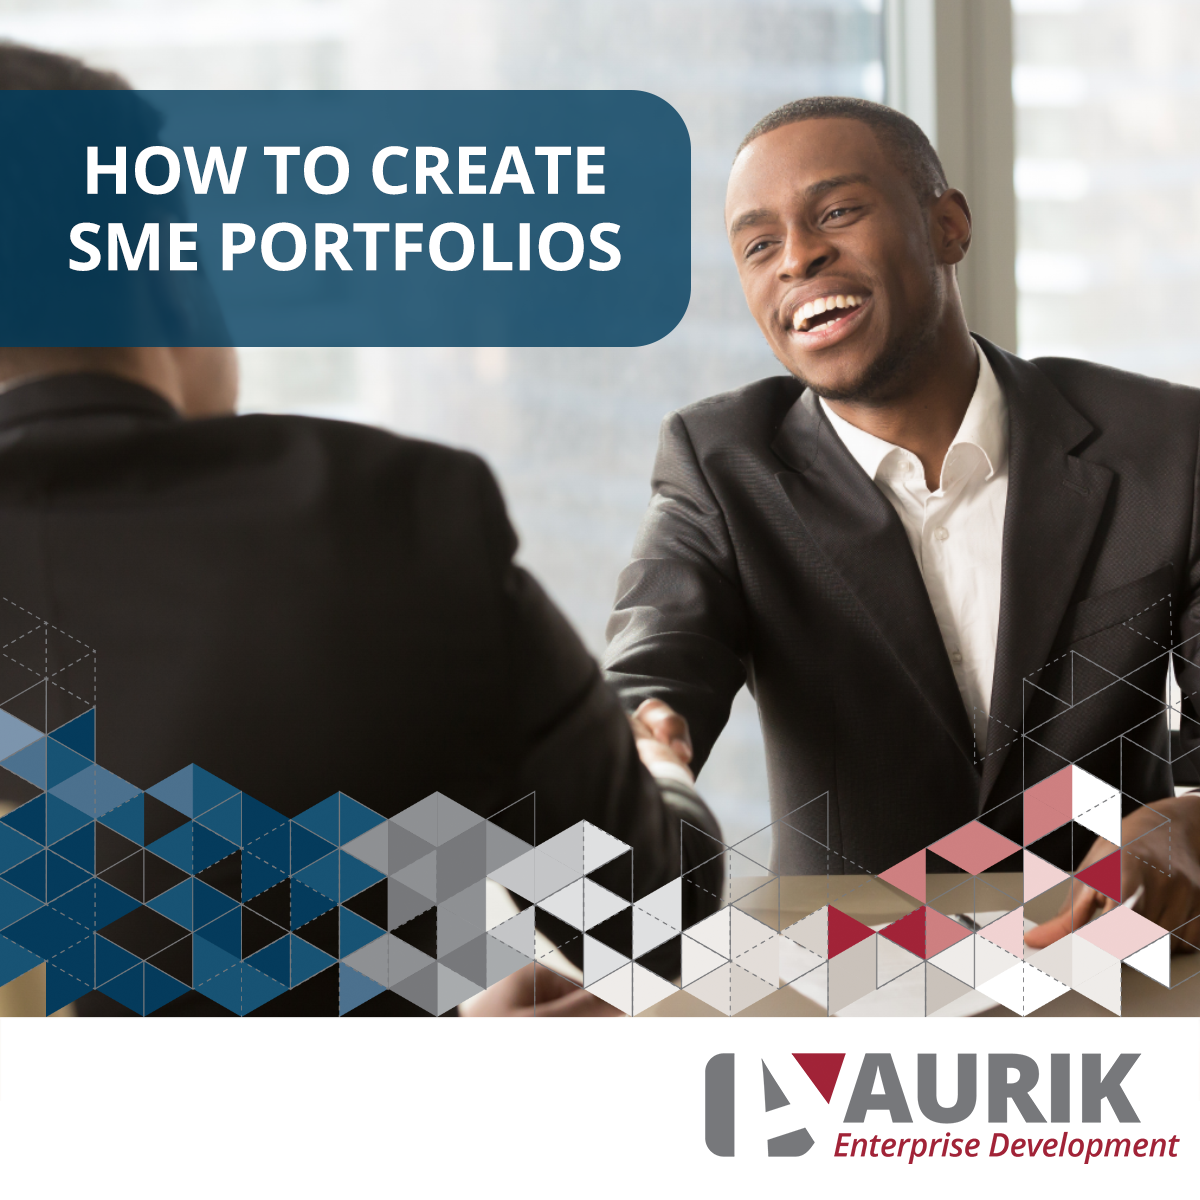 How to create SME portfolios when managing risk and return?